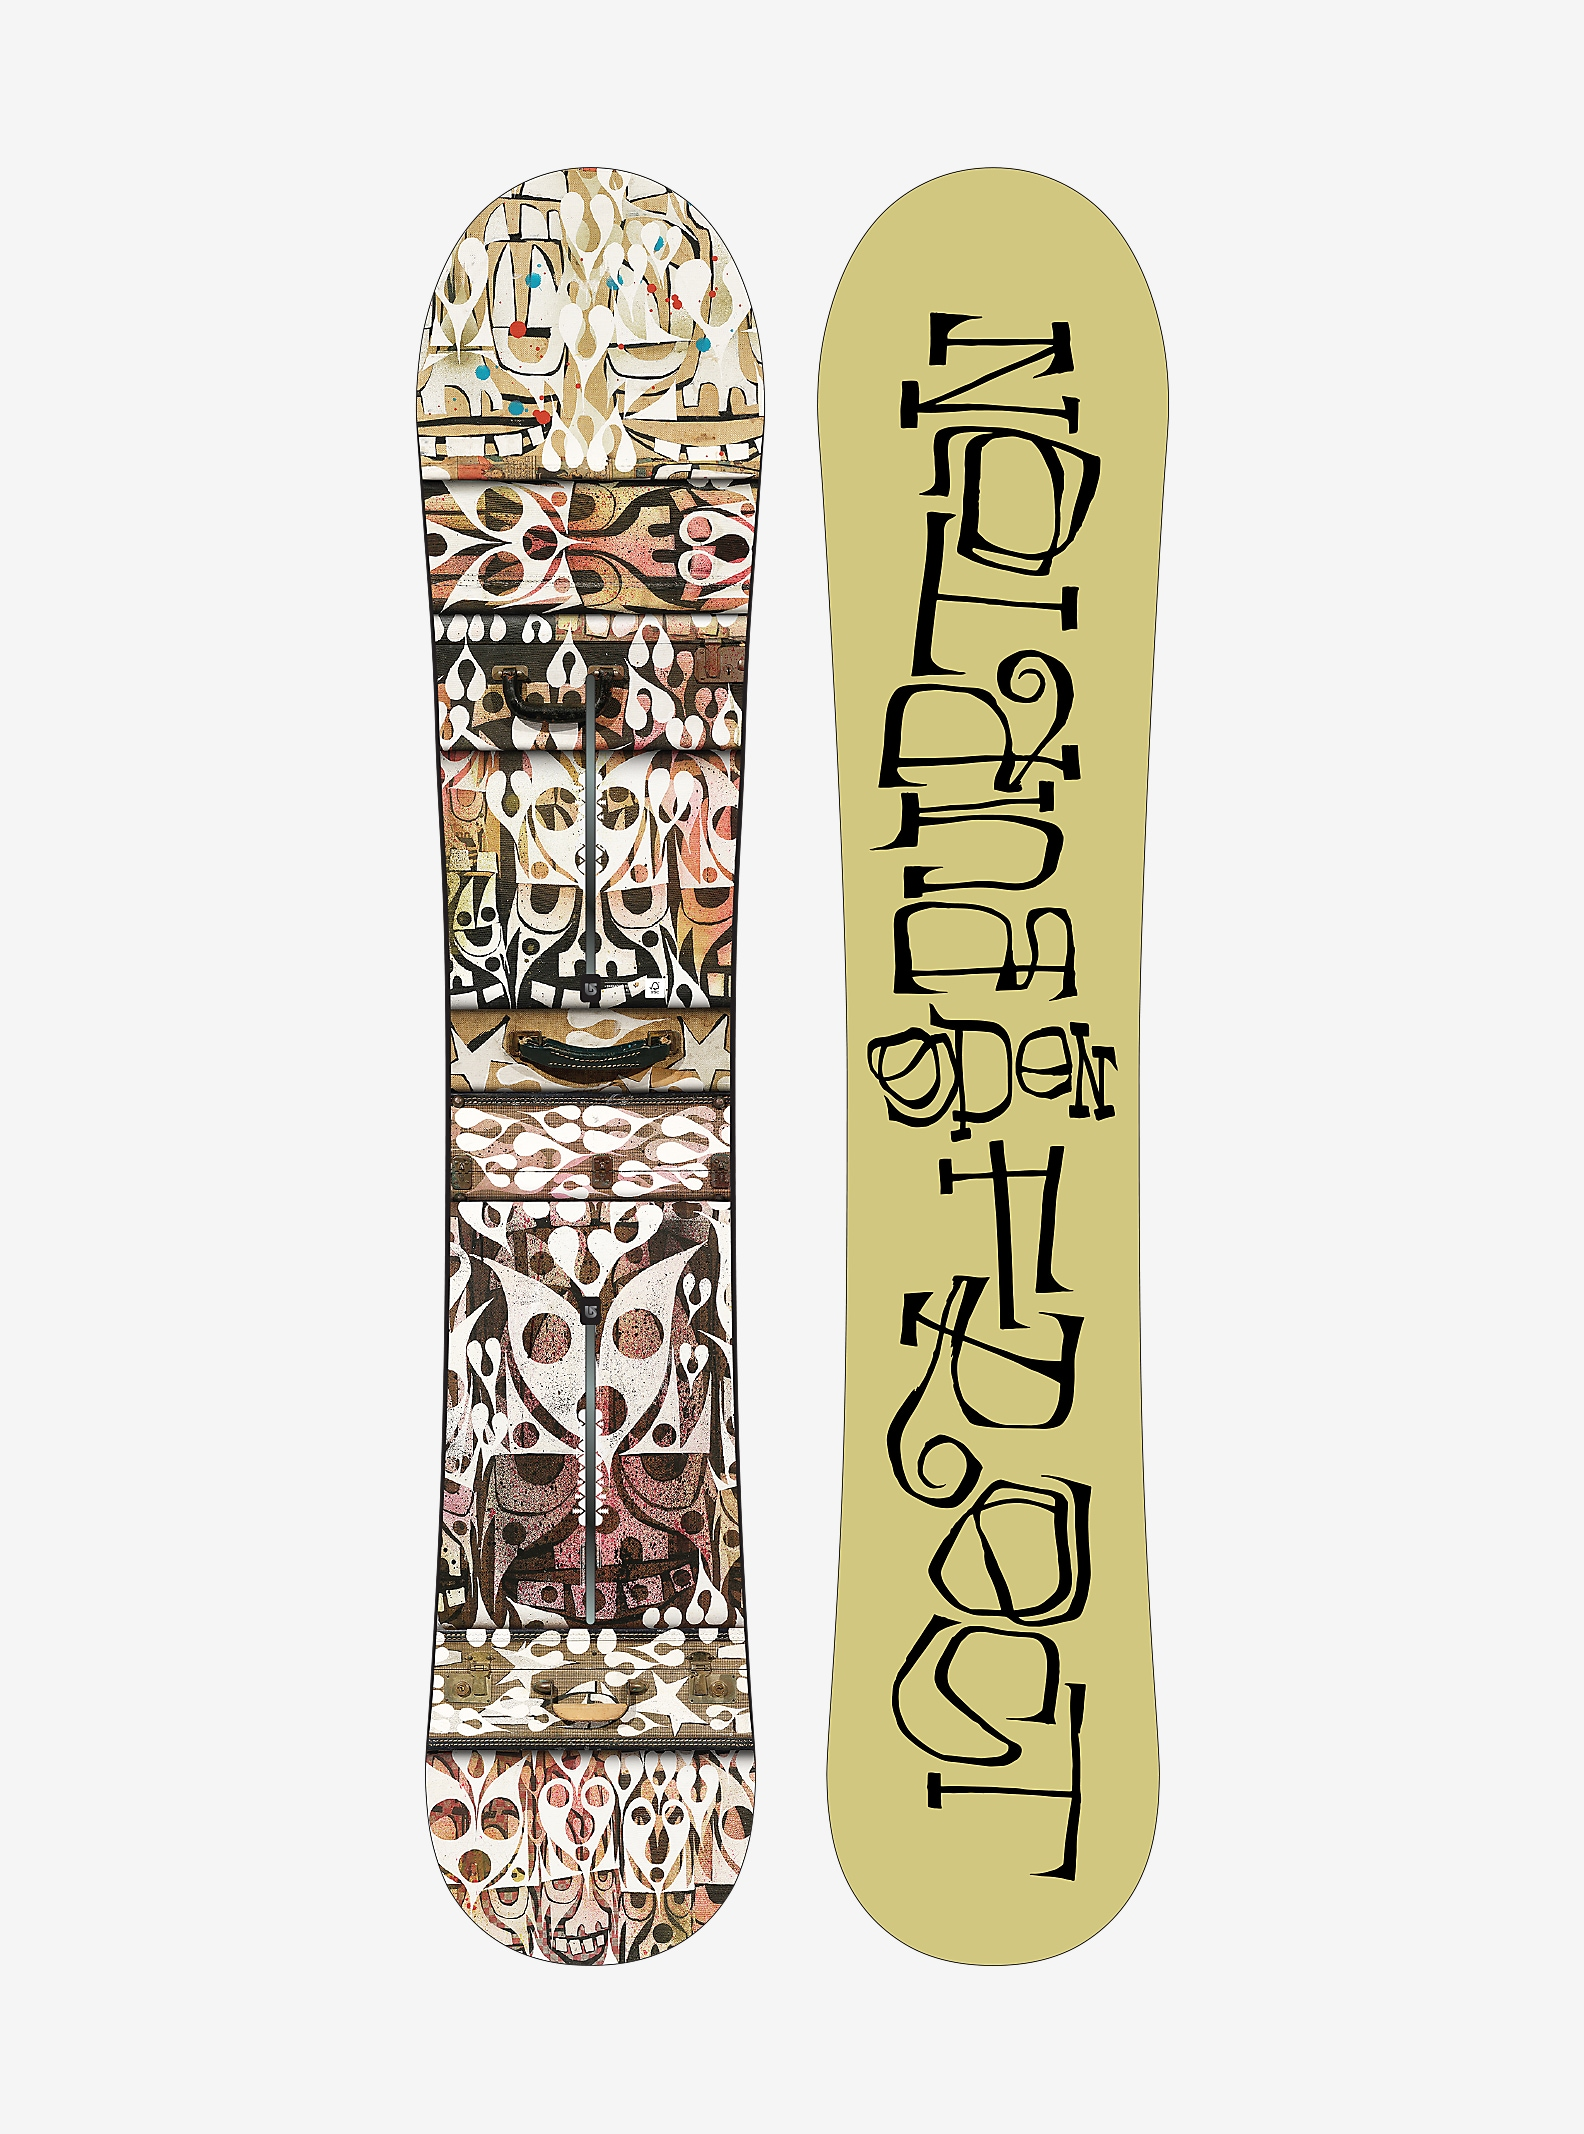 Phil Frost × G Pen × Burton Barracuda Snowboard shown in 157